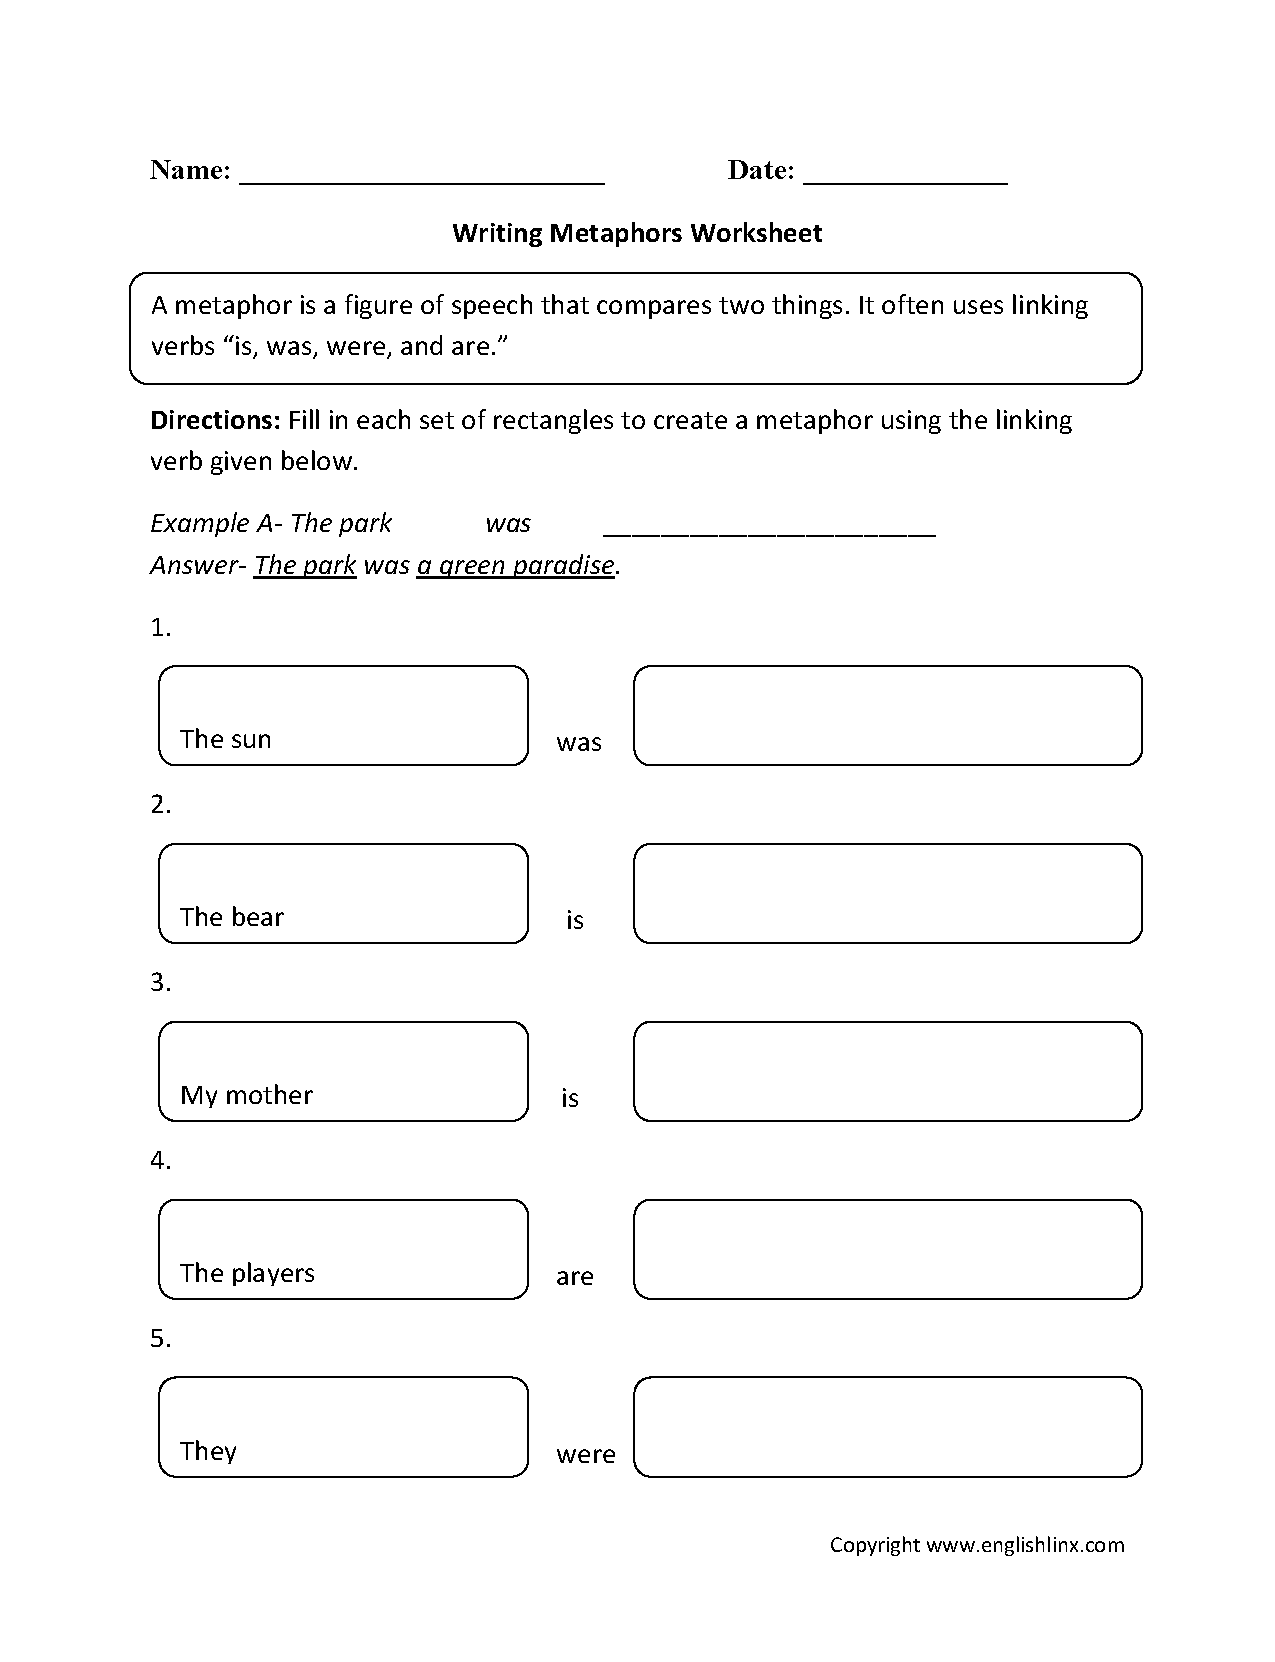 Aldiablosus  Picturesque Englishlinxcom  Metaphors Worksheets With Magnificent Worksheet With Enchanting Antonyms Worksheets Th Grade Also Converting Capacity Worksheet In Addition Kuta Software Geometry Worksheets And Divide Worksheet As Well As Home Safety Worksheets Additionally Free Printable Worksheets For Th Grade From Englishlinxcom With Aldiablosus  Magnificent Englishlinxcom  Metaphors Worksheets With Enchanting Worksheet And Picturesque Antonyms Worksheets Th Grade Also Converting Capacity Worksheet In Addition Kuta Software Geometry Worksheets From Englishlinxcom